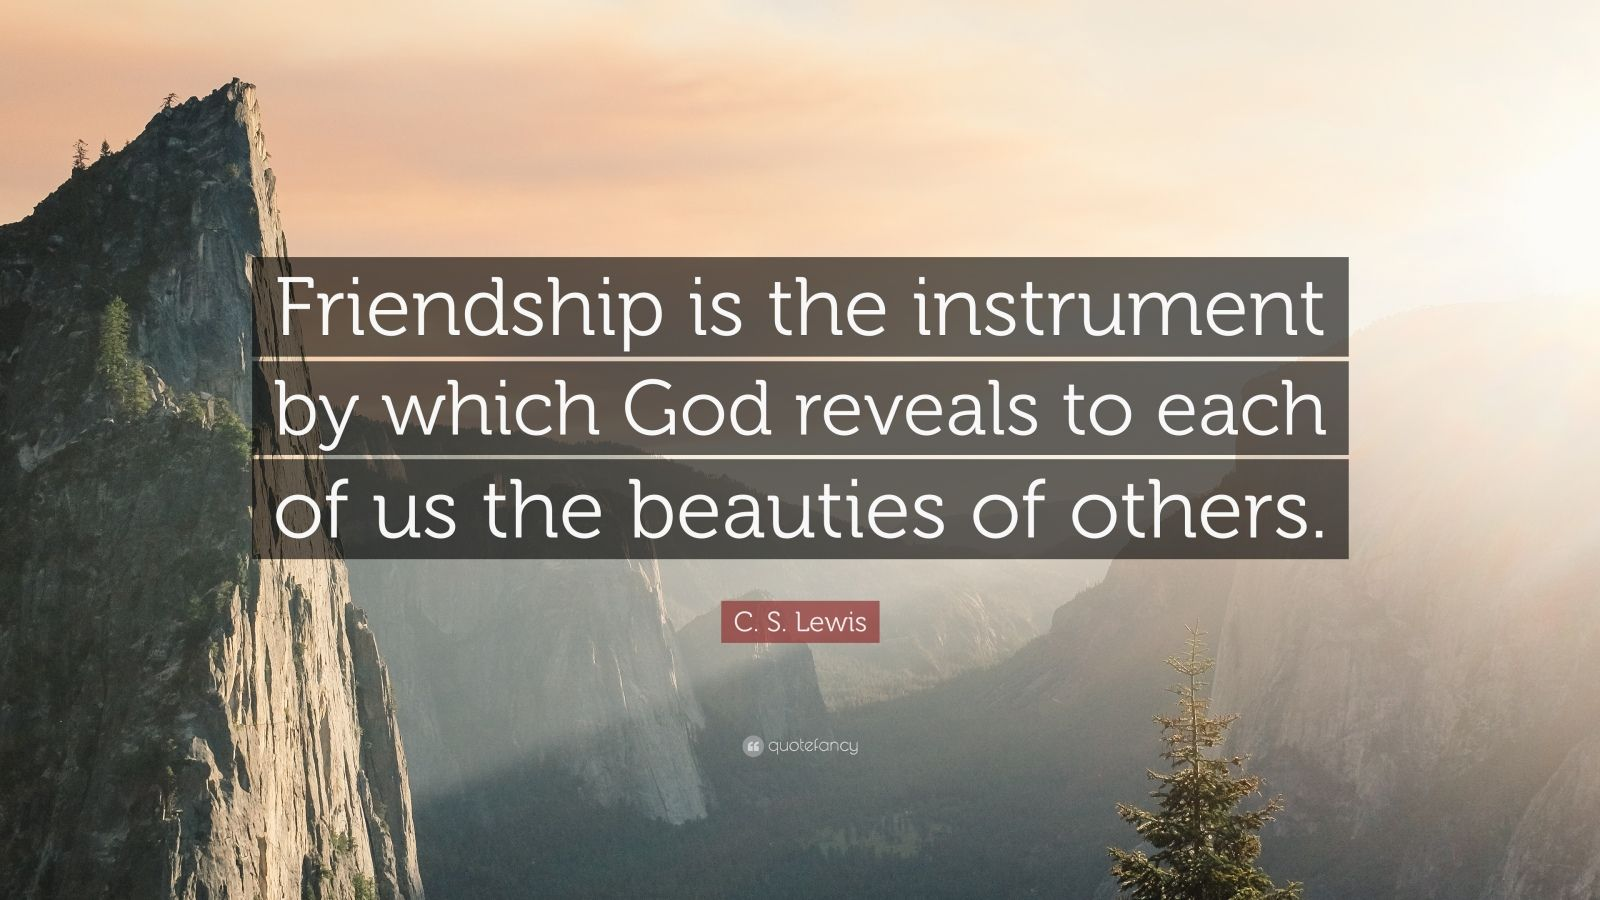 """C. S. Lewis Quote: """"Friendship is the instrument by which God reveals to each of us the beauties of others."""""""